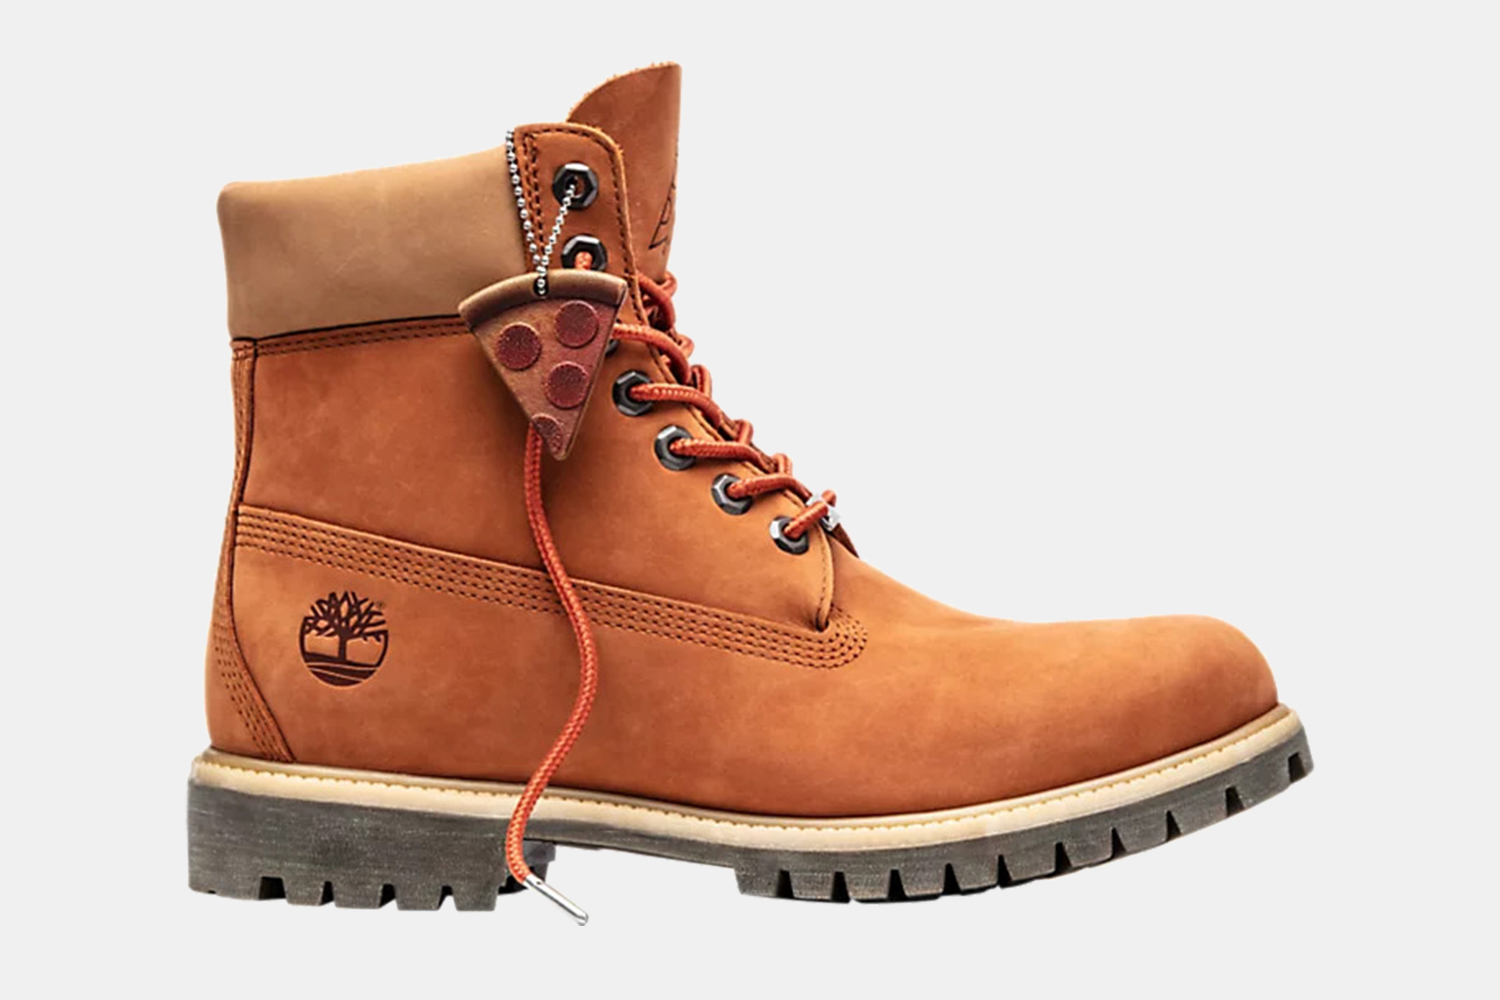 Timberland Limited-Edition Pizza Food Truck Boots